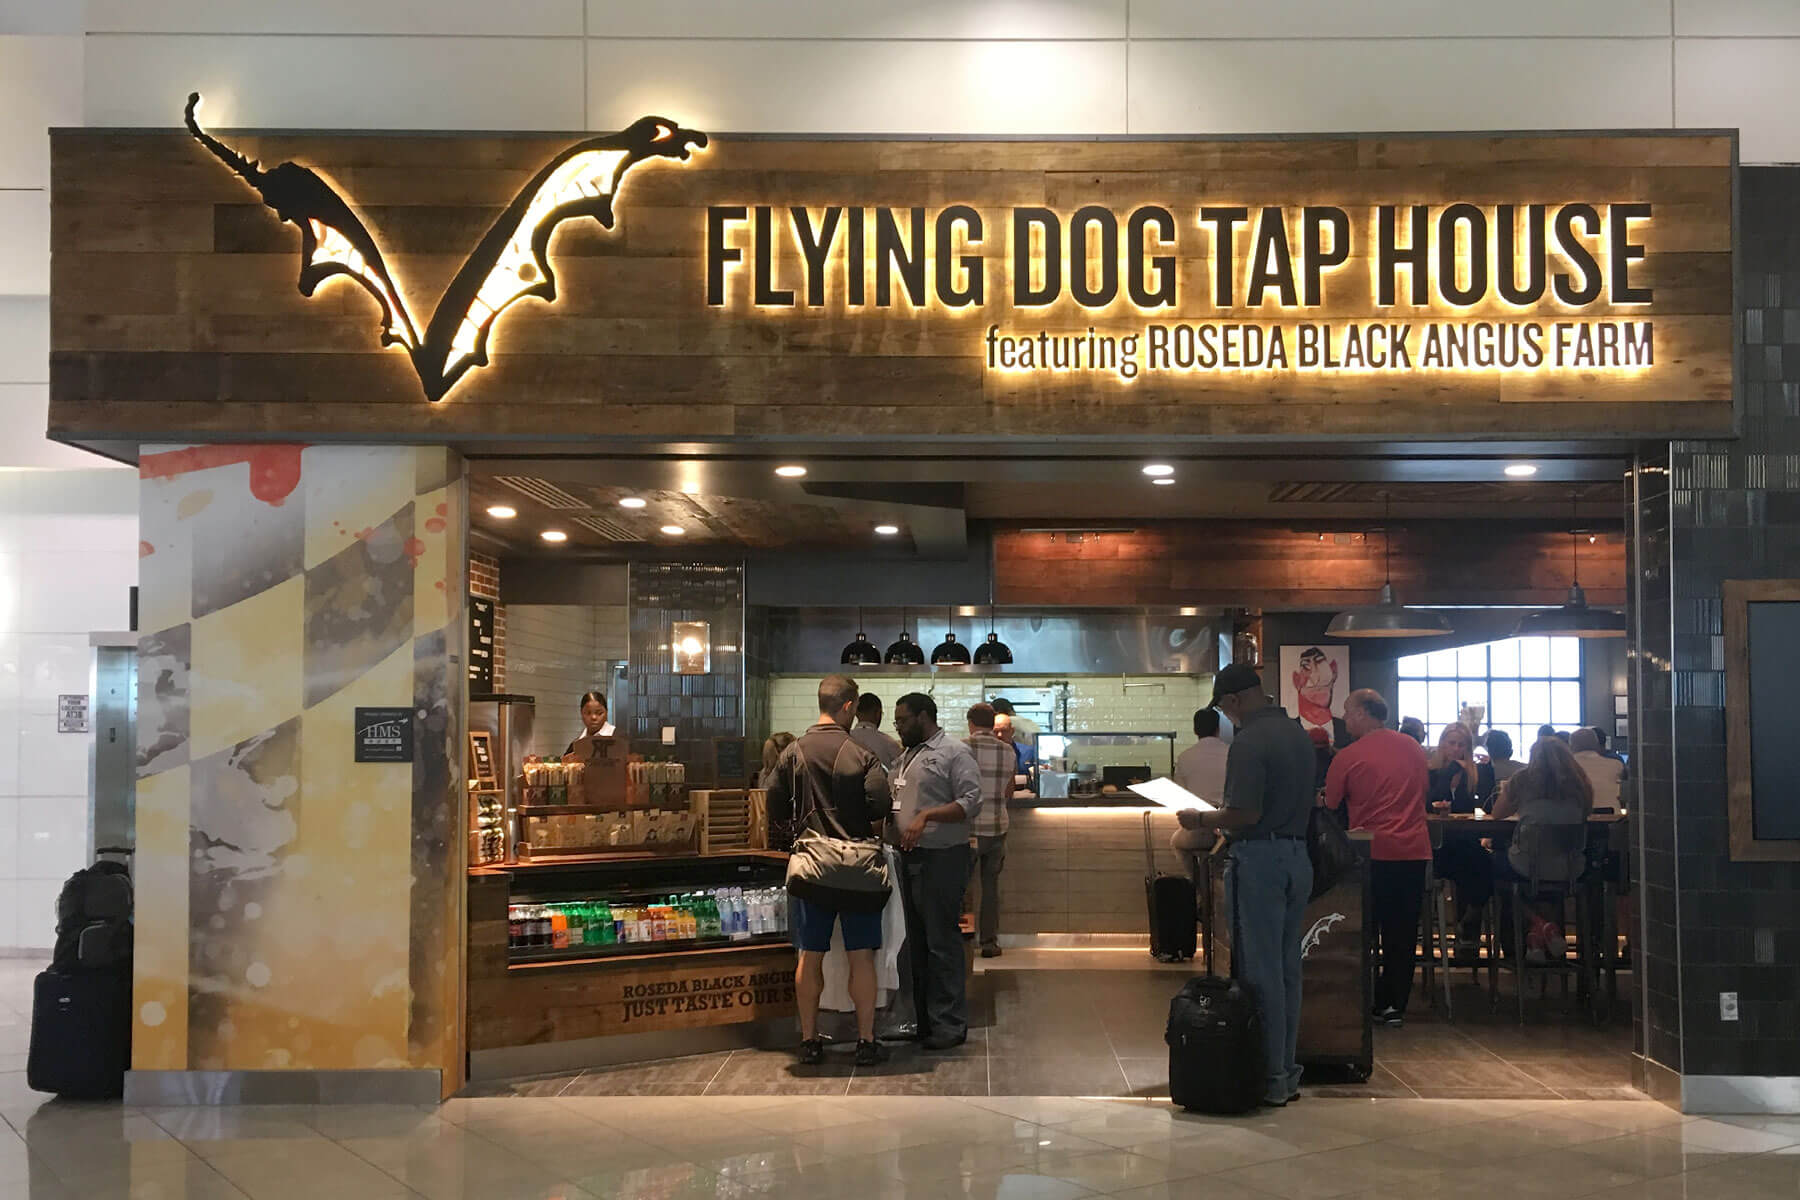 Outside the Flying Dog Tap House at Baltimore/Washington International Airport